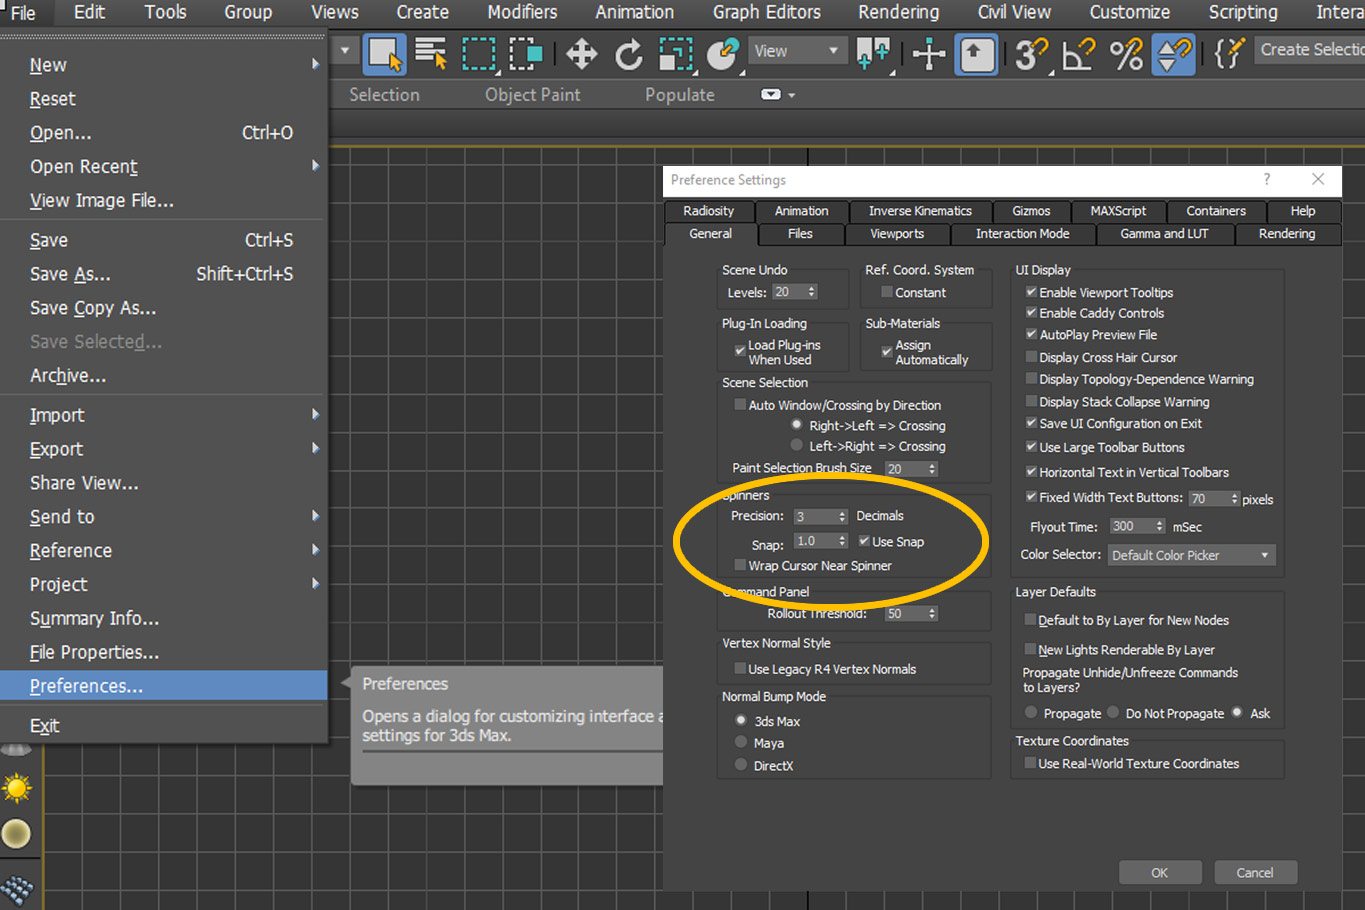 3DS Max Spinner Snaps Settings Menu